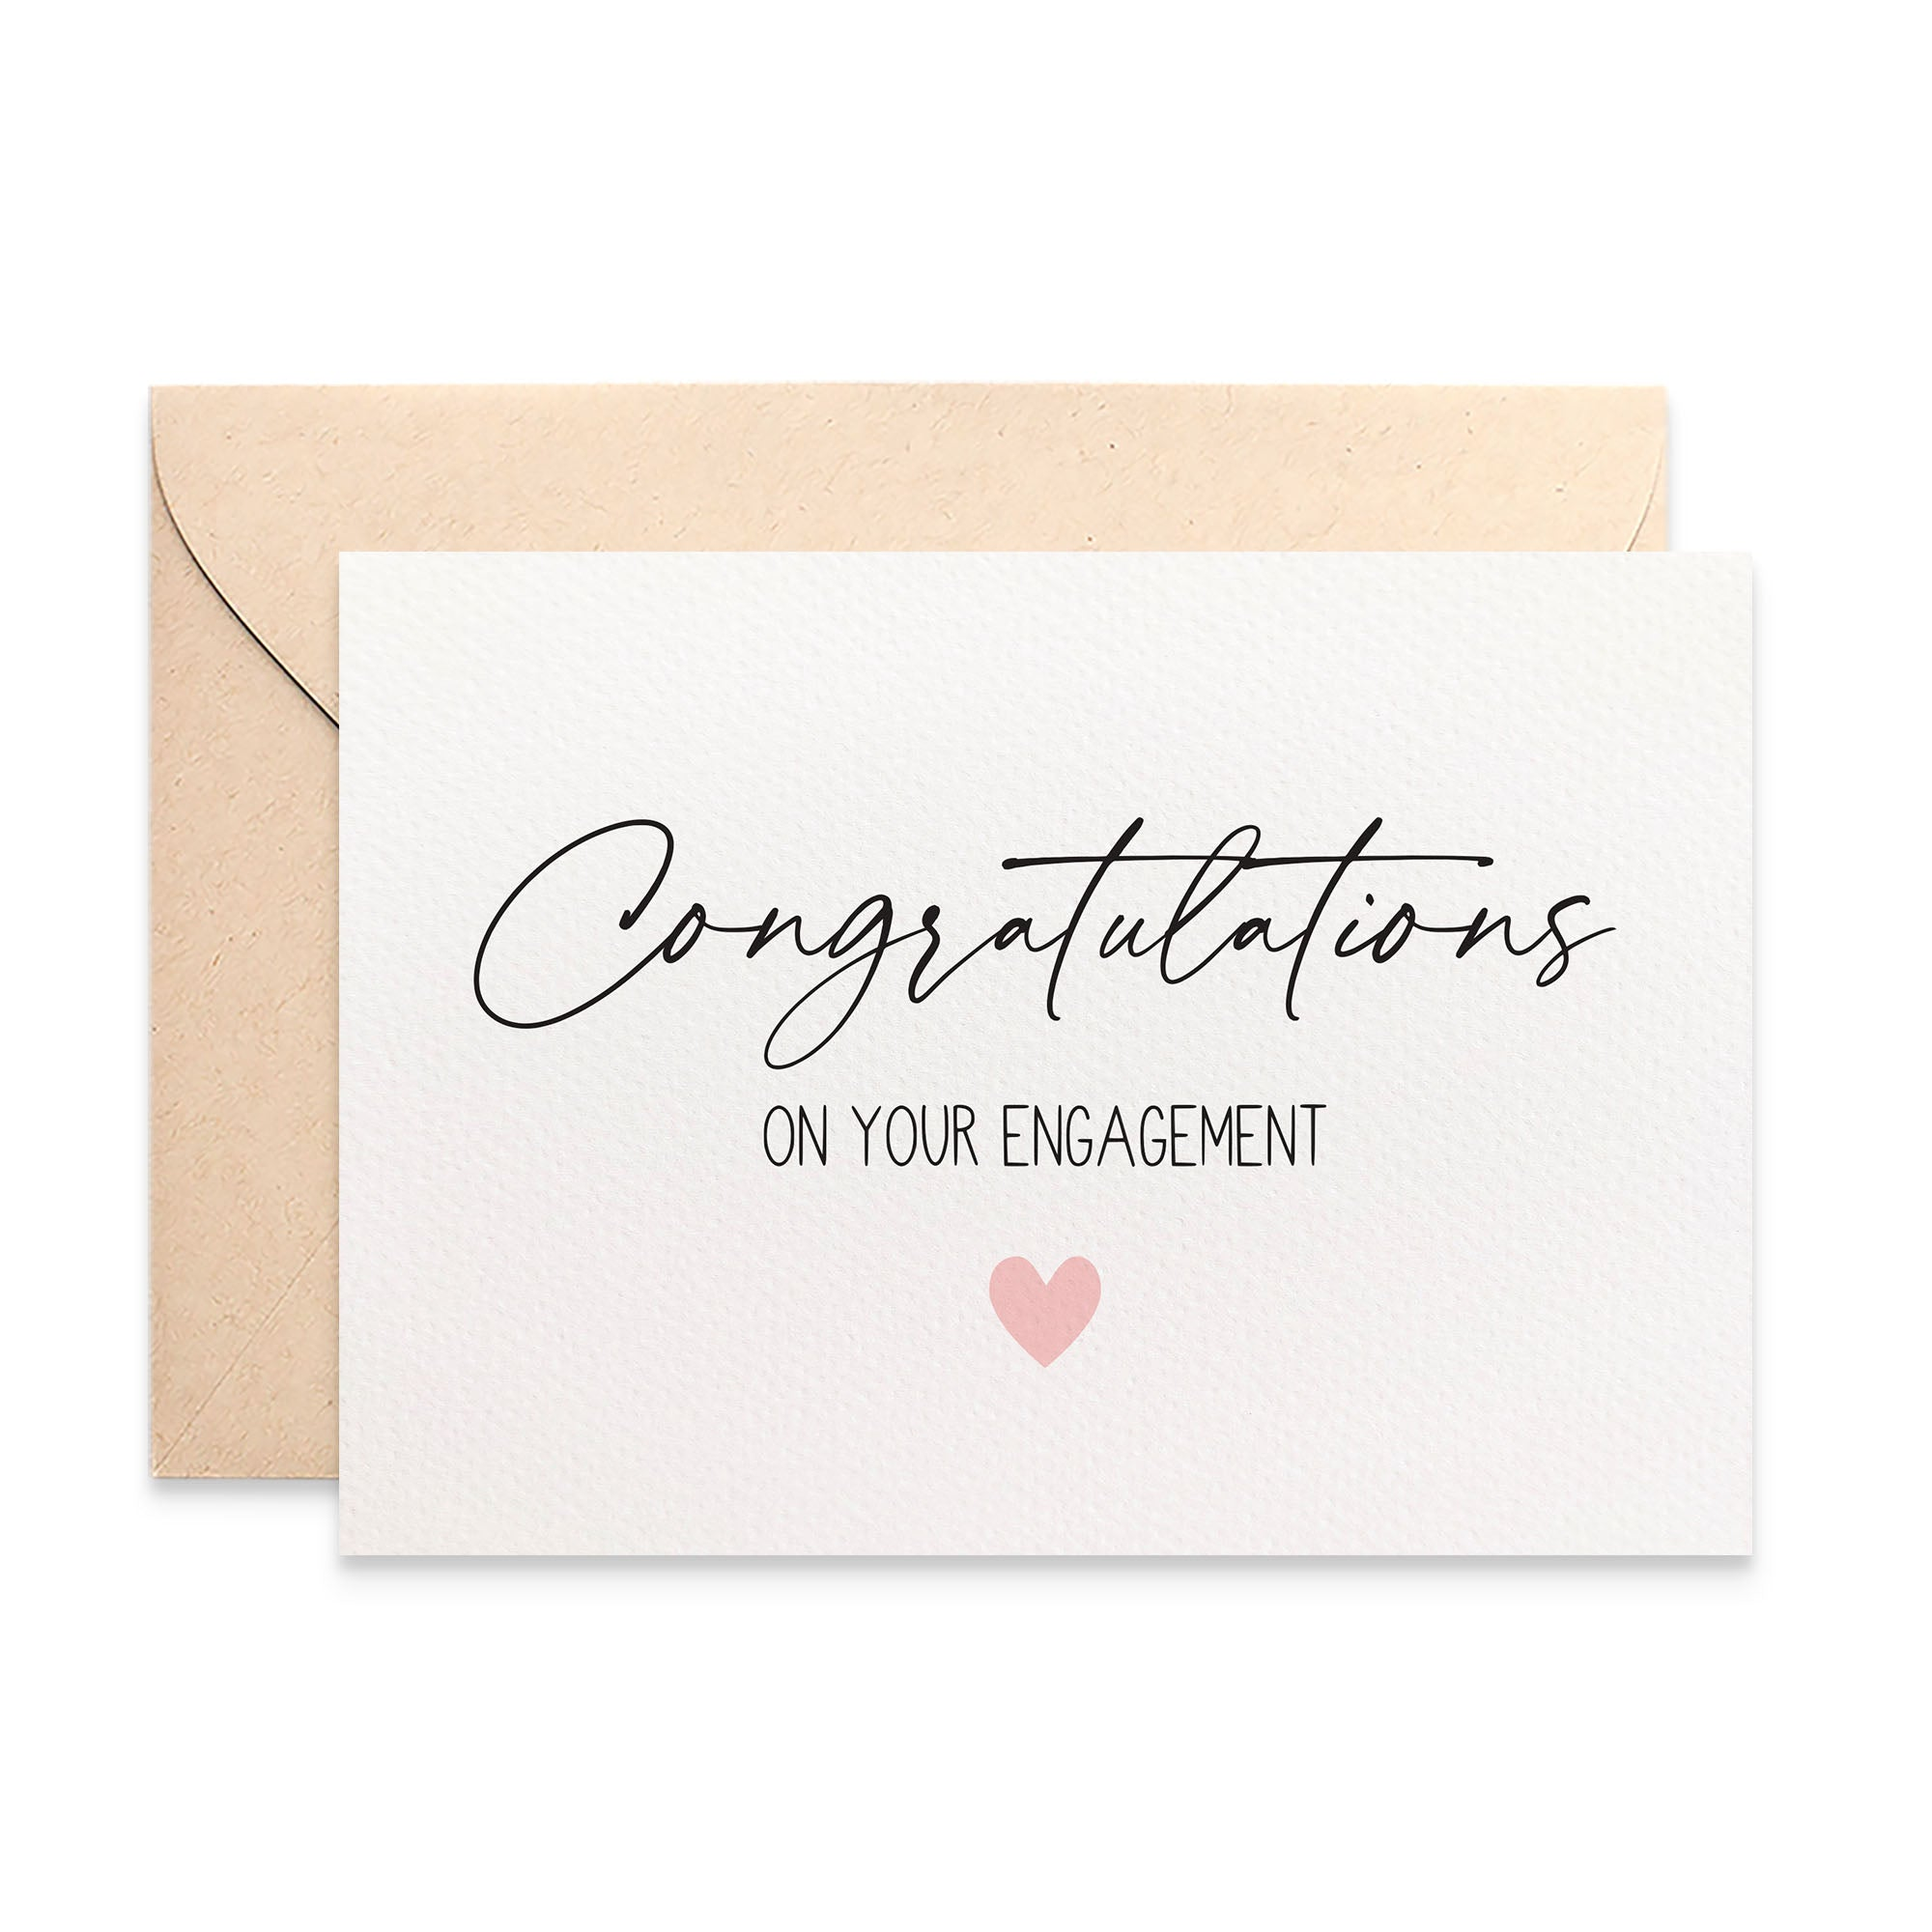 Congratulations Engagement Greeting Card by mumandmehandmadedesigns- An Australian Online Stationery and Card Shop